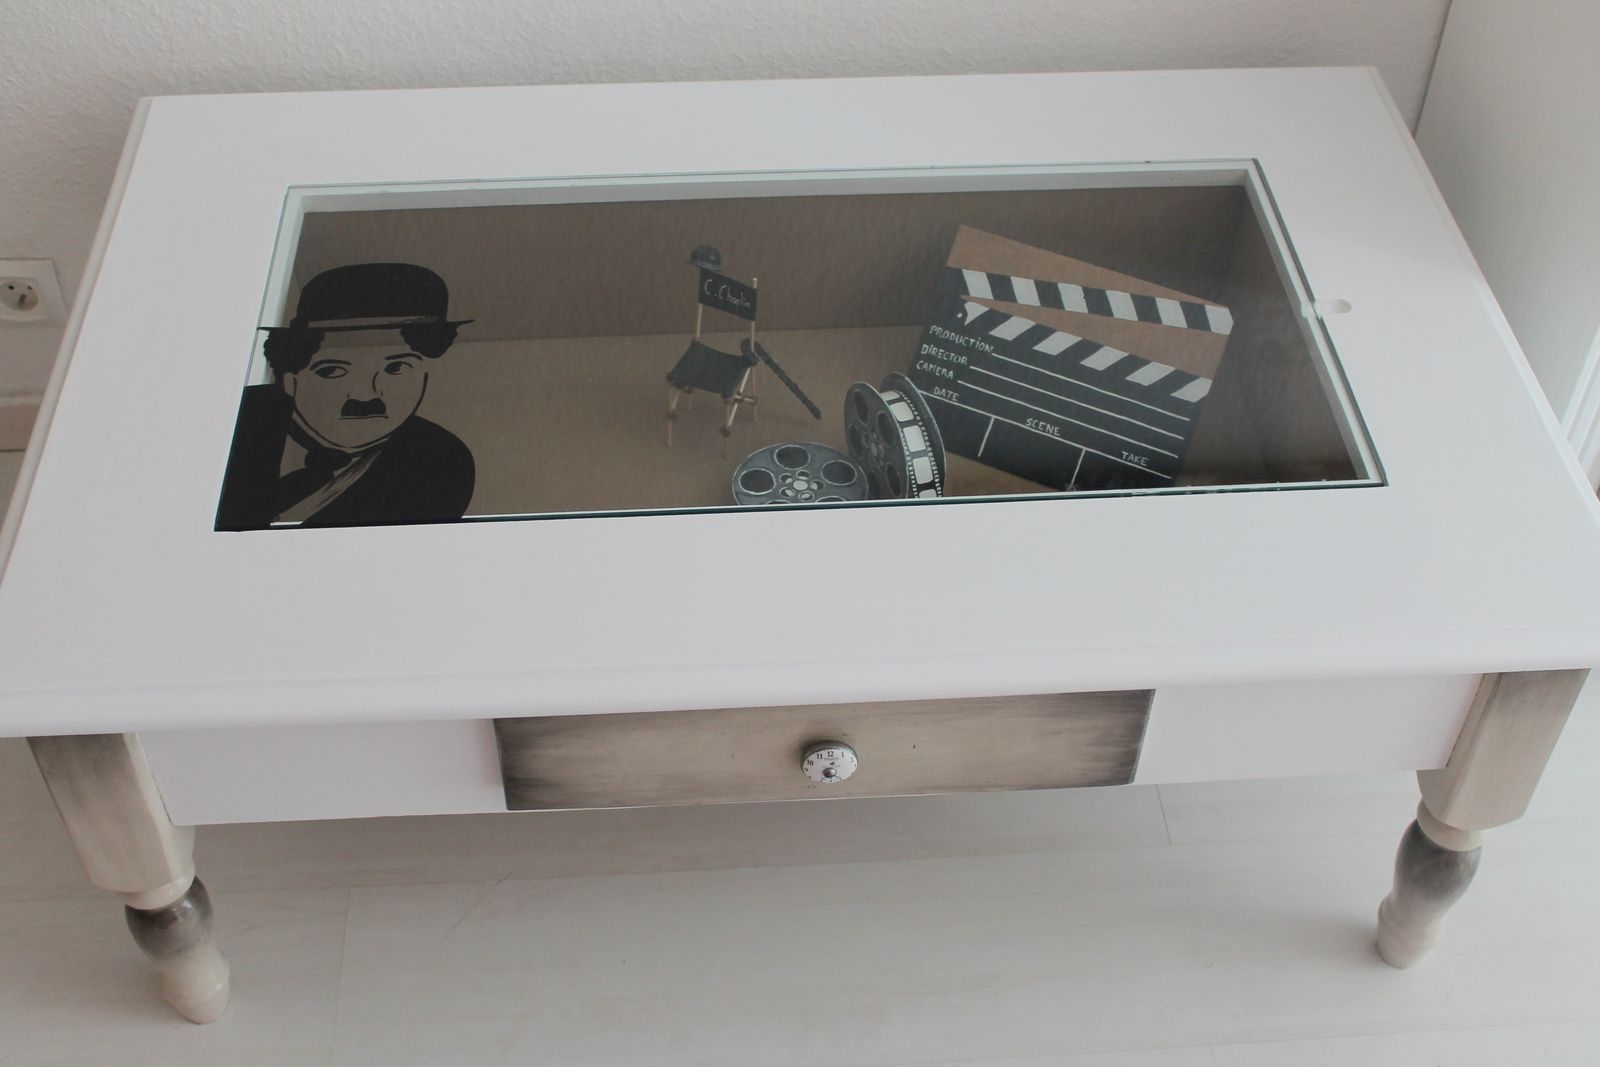 Ensemble Table Basse Meuble Tv Cin Ma 30 S Dieloart # Ensemble Table Basse Et Meuble Tv